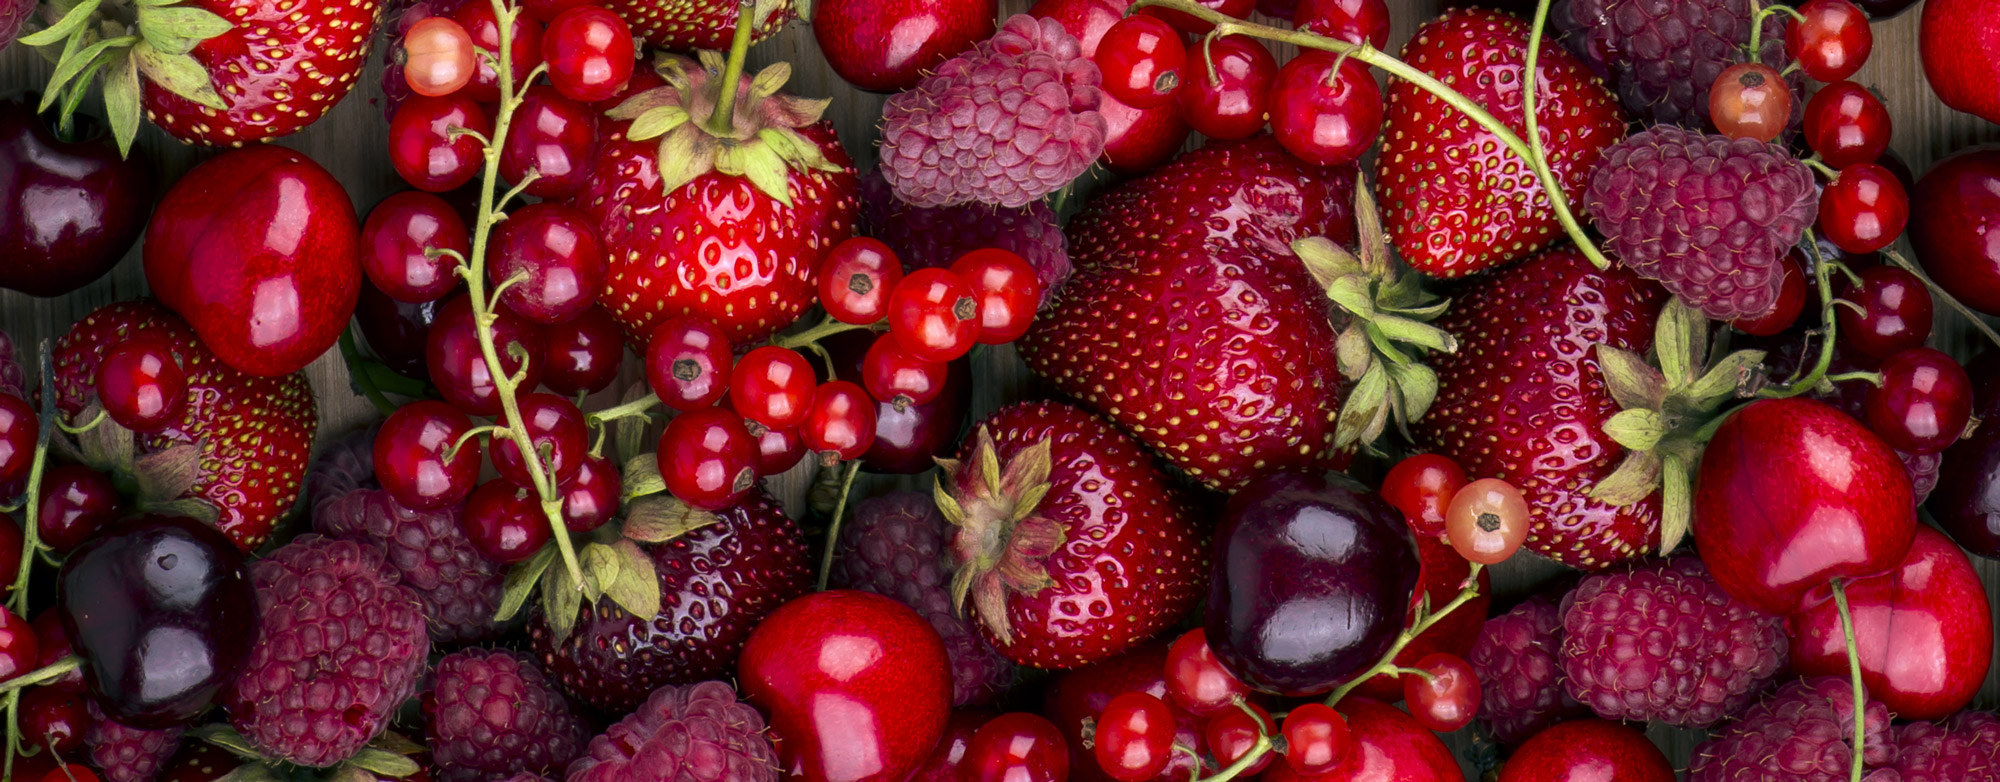 A close-up of fresh red strawberries, cherries, raspberries and huckleberries.